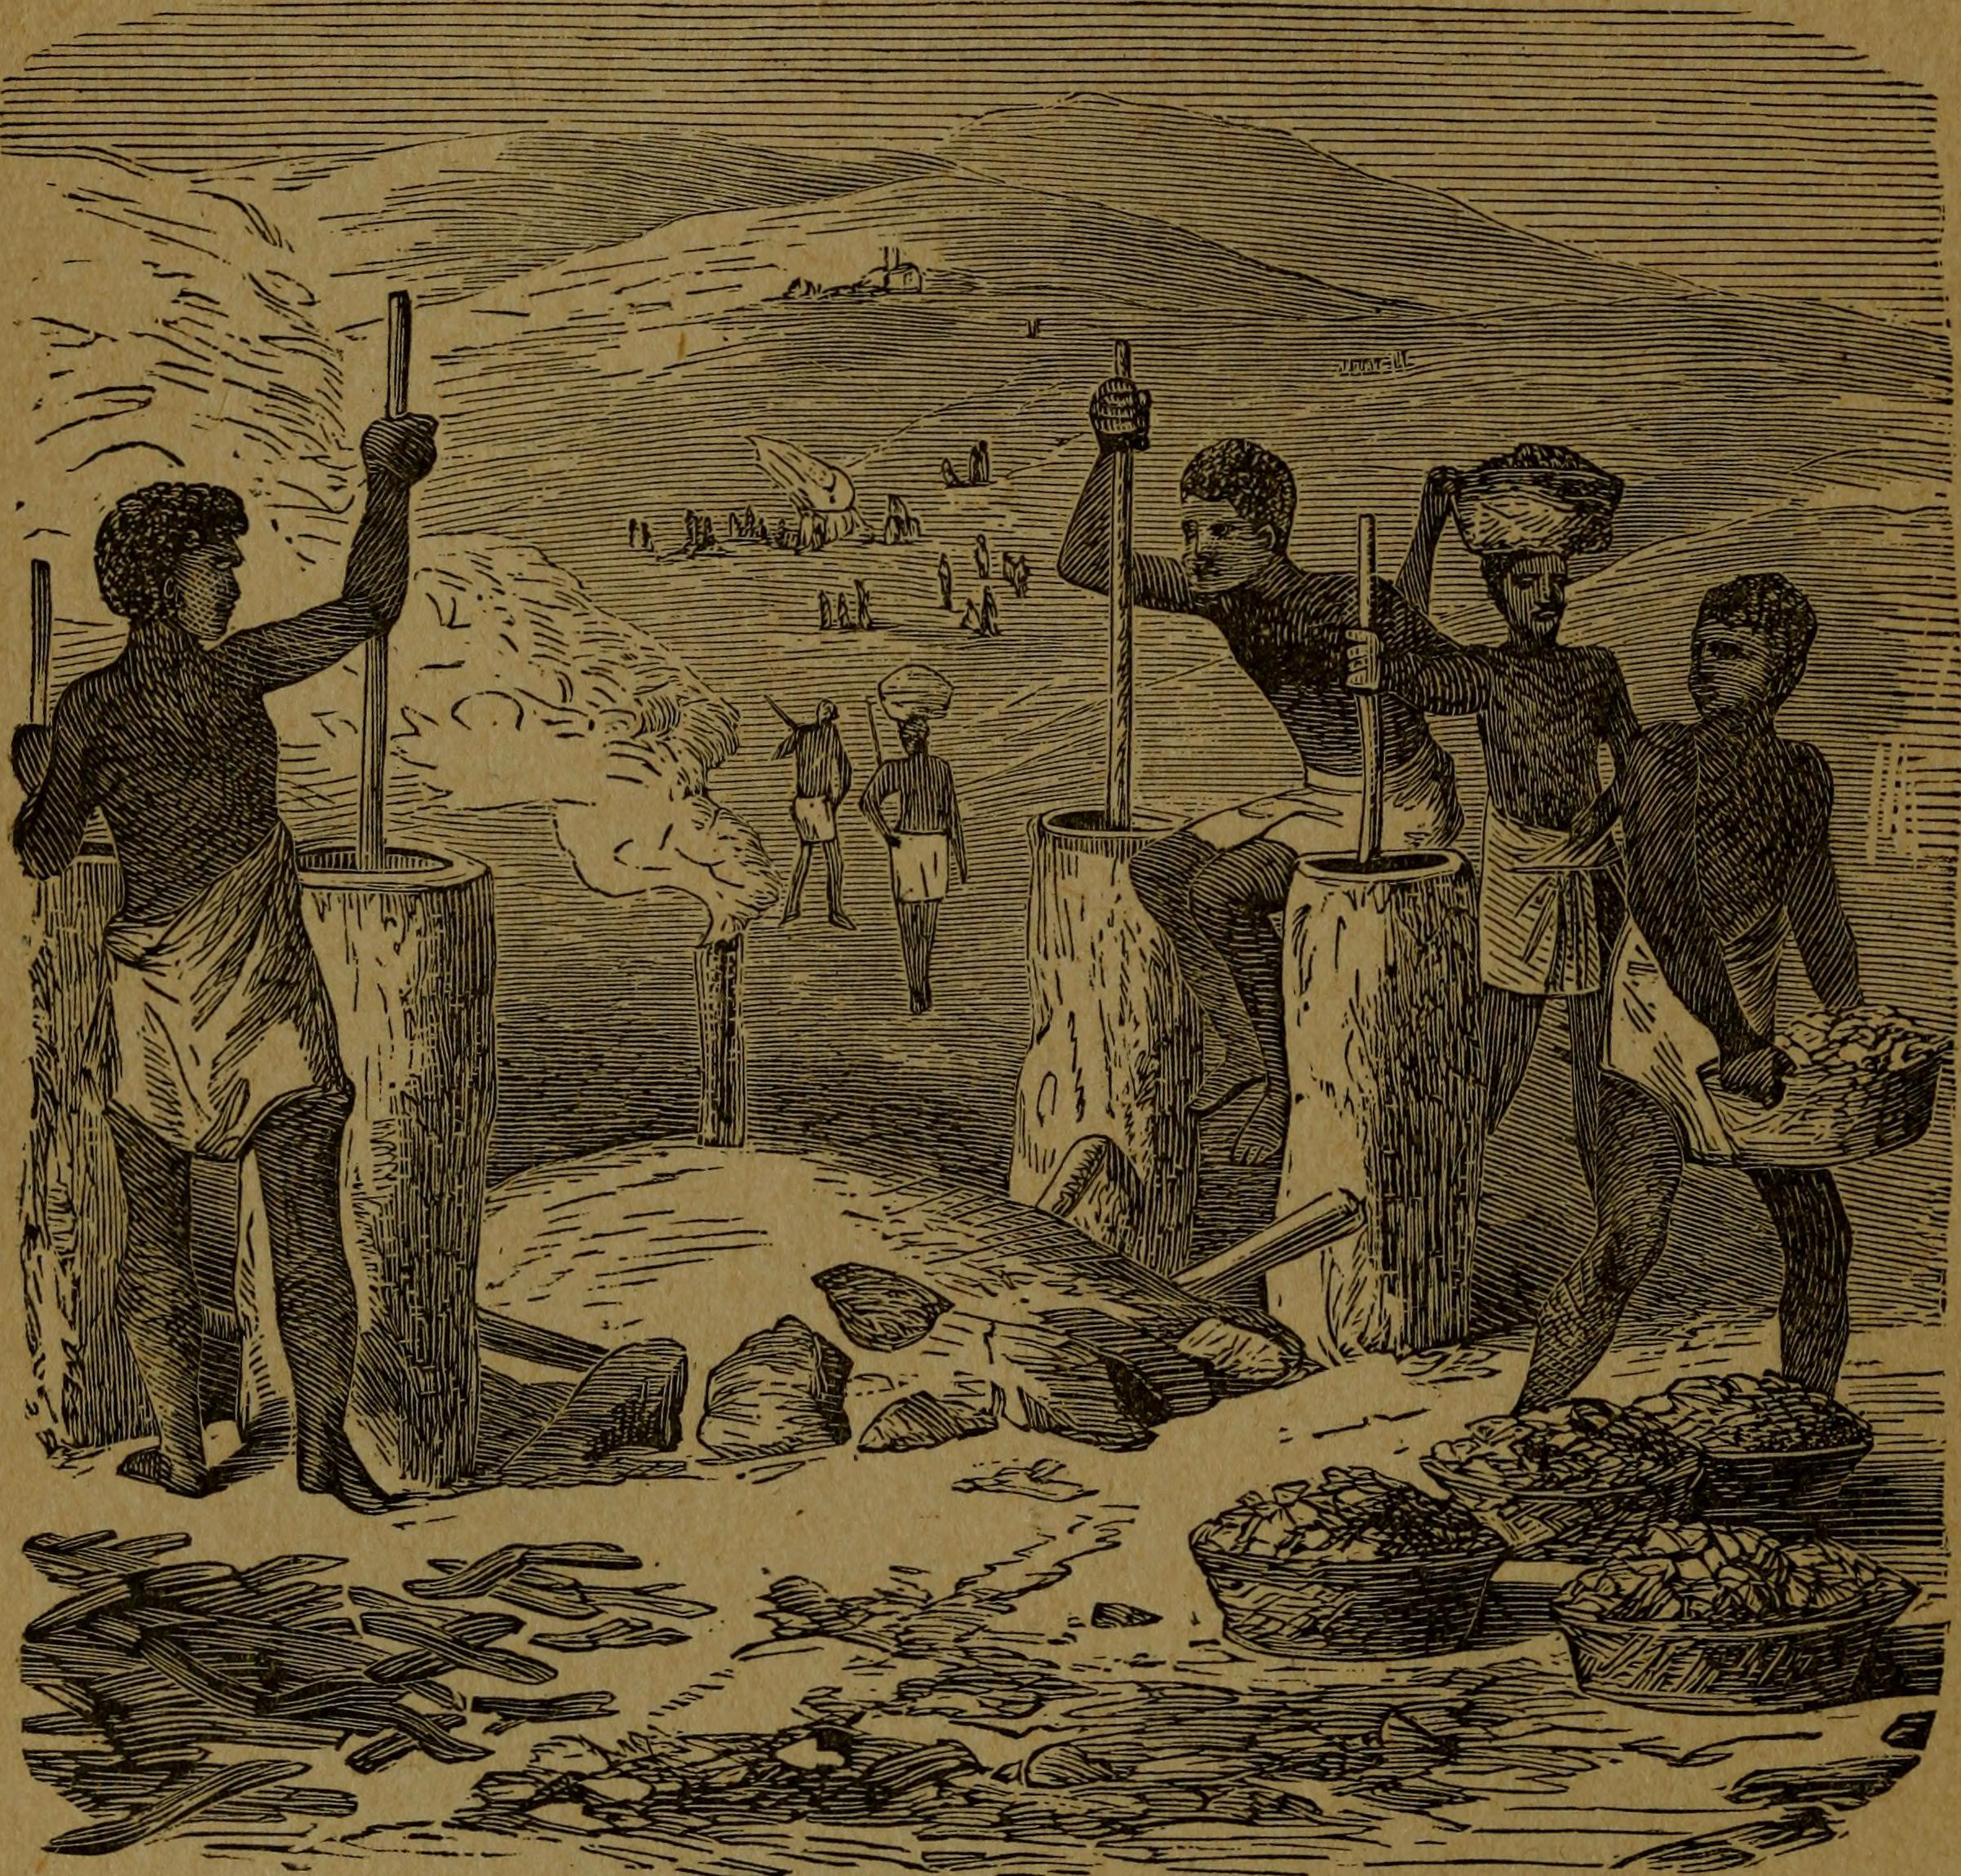 Have explorers in Ecuador found 'Lost City of Giants'?